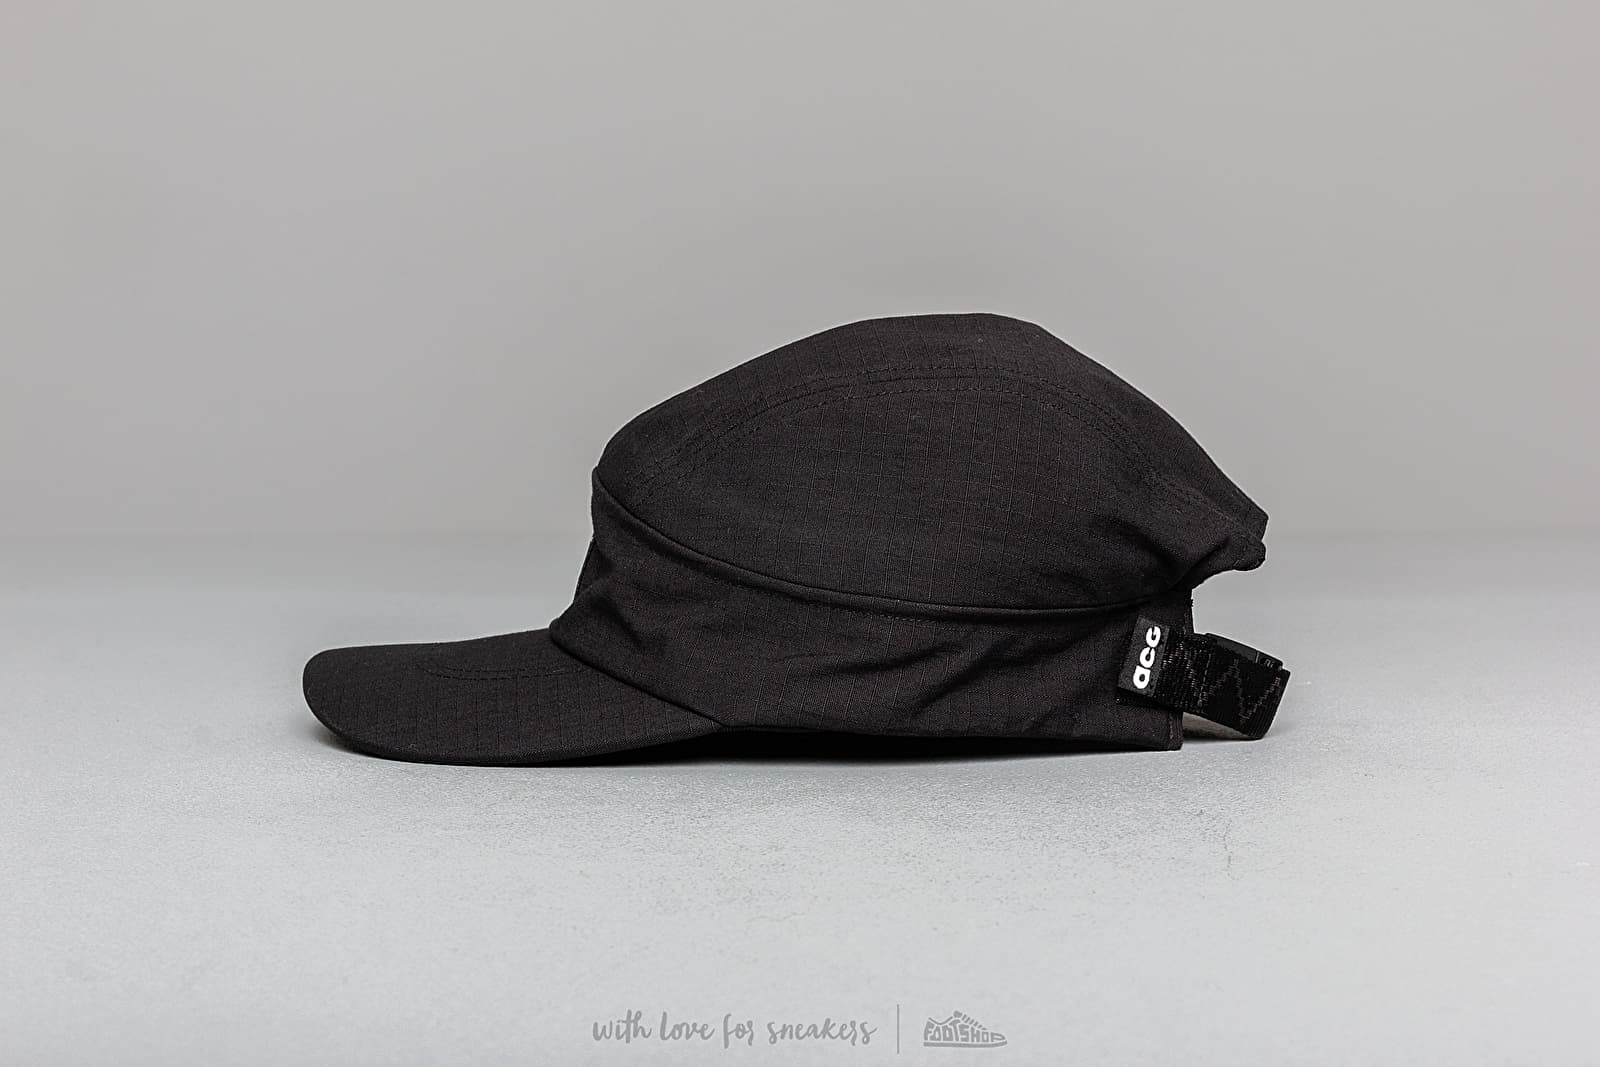 newest a7fa8 84ac2 Nike NRG ACG Tailwind Visor Cap Black  Black at a great price  43 buy at